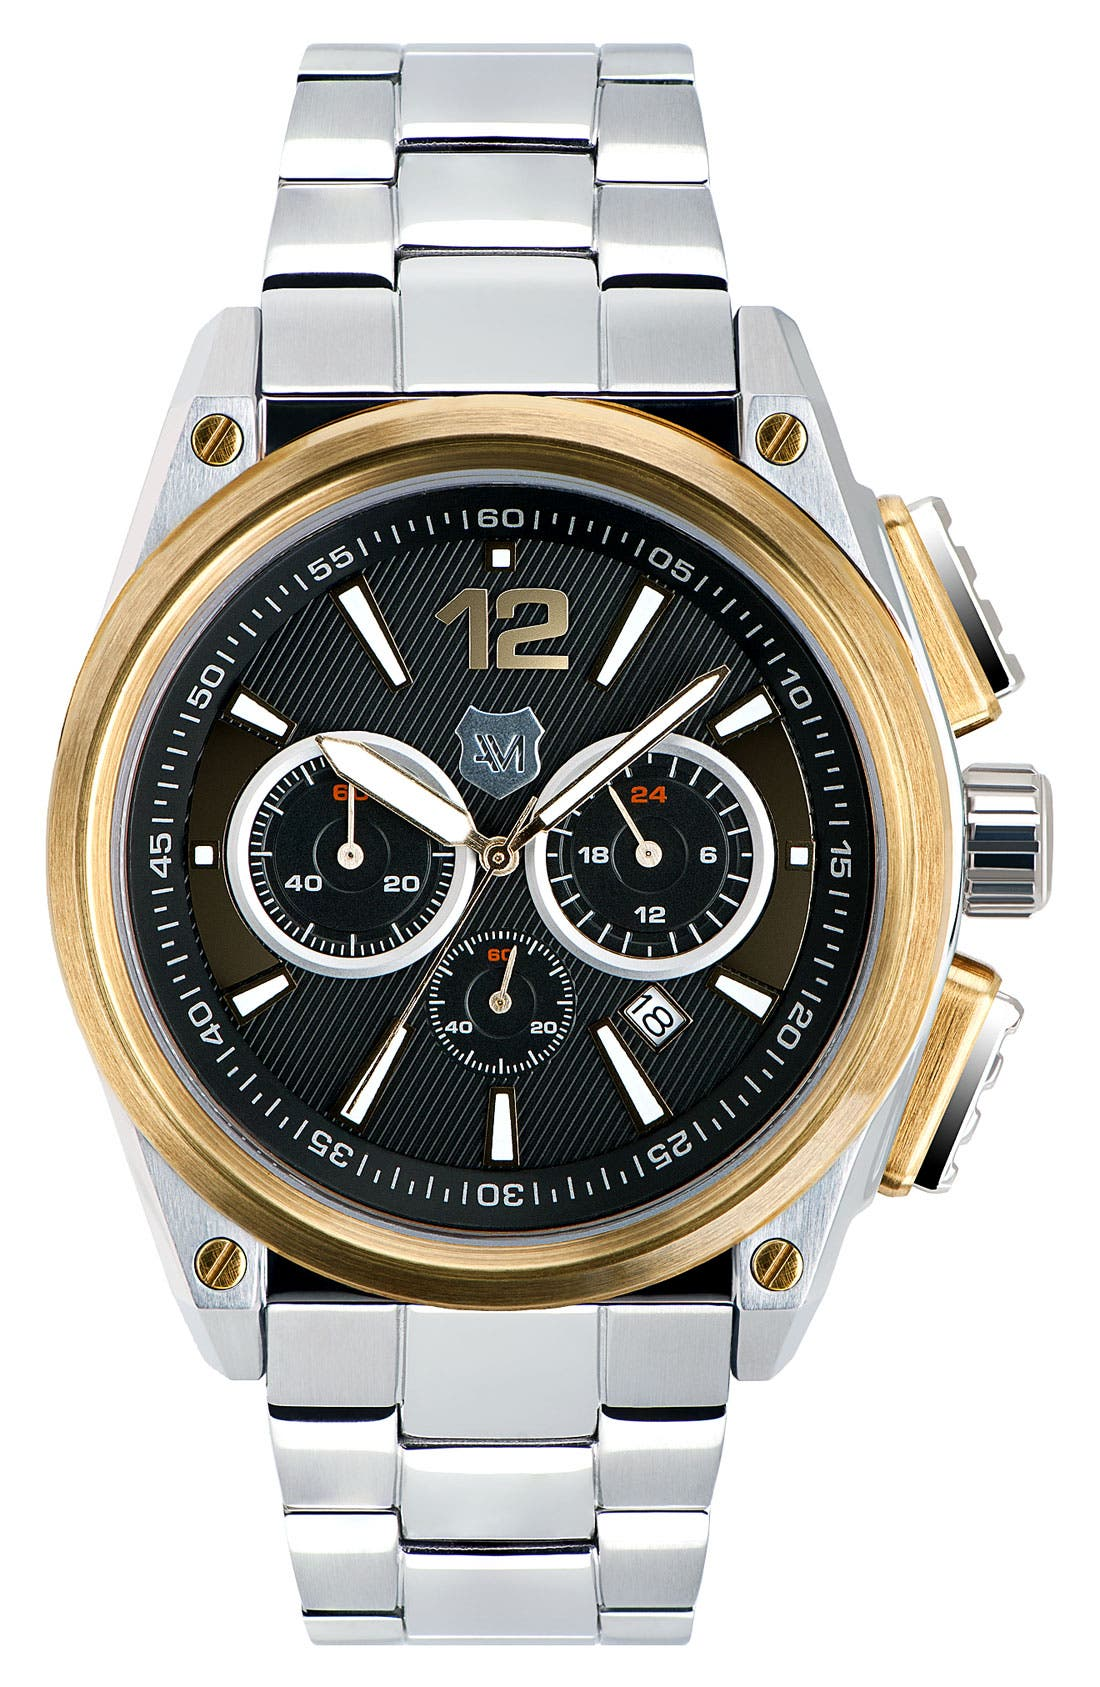 Alternate Image 1 Selected - Andrew Marc Watches 'G-III Racer' Chronograph Bracelet Watch, 46mm